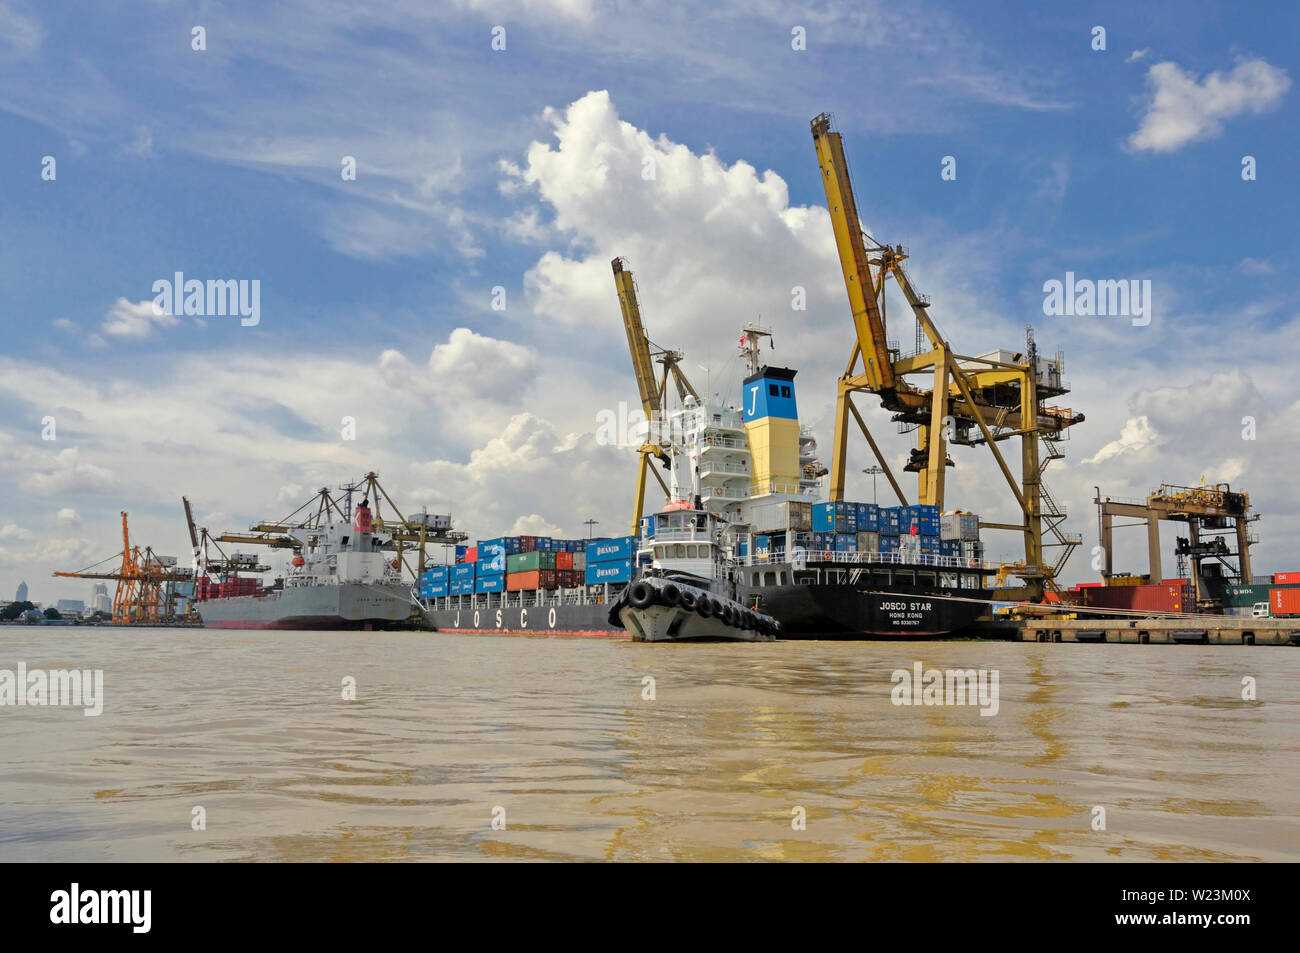 bangkok, thailand - august 28, 2008: containerships loading